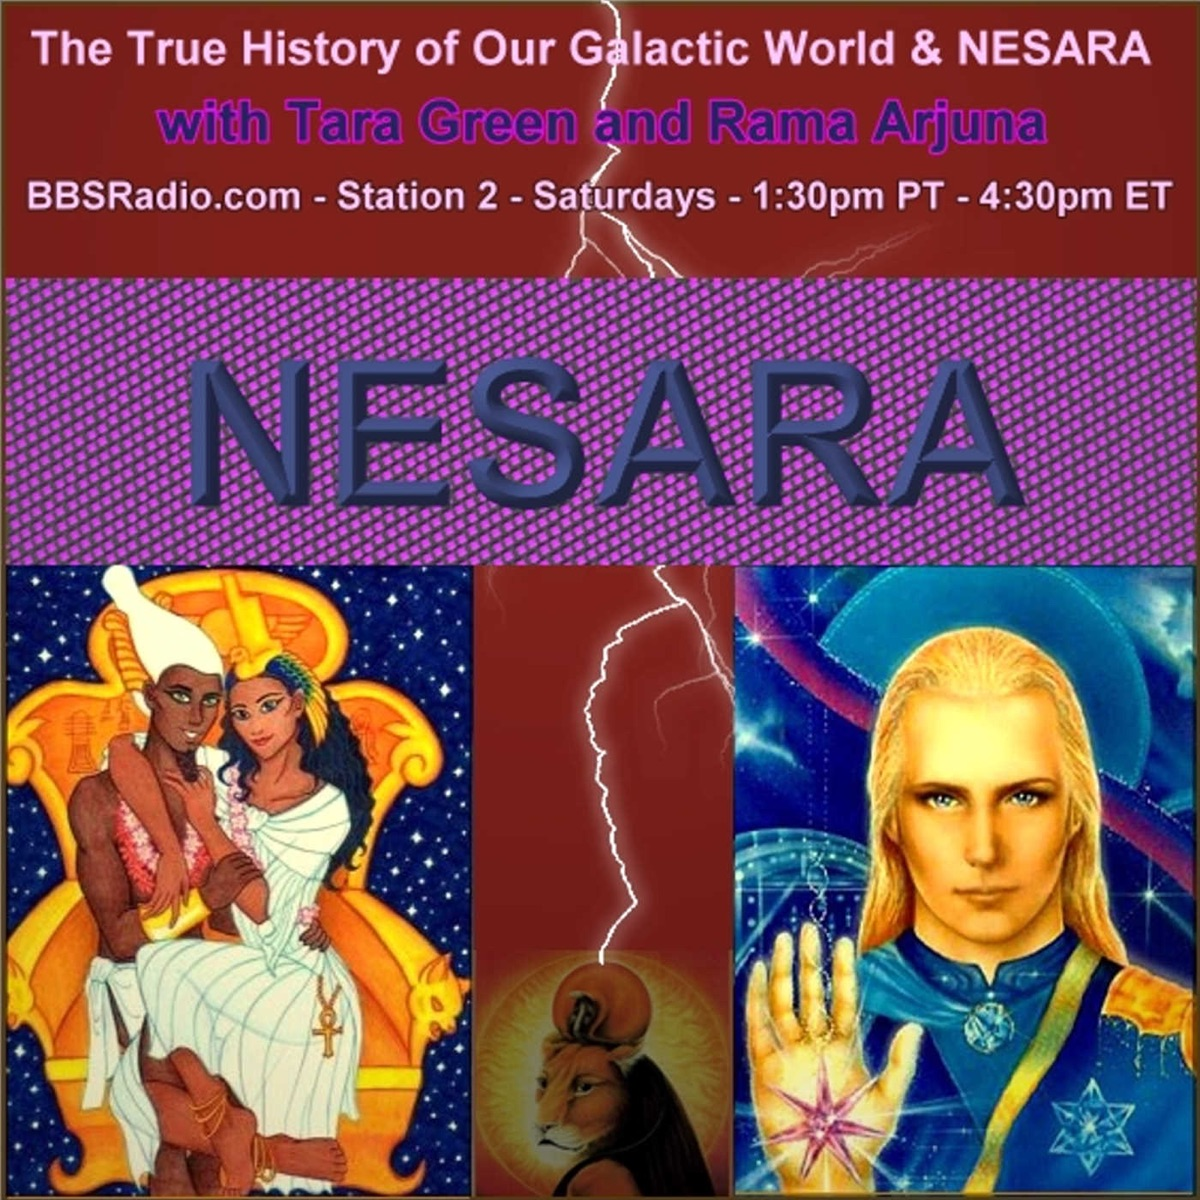 The True History of Our Galactic World and NESARA with Tara Green and Rama Arjuna